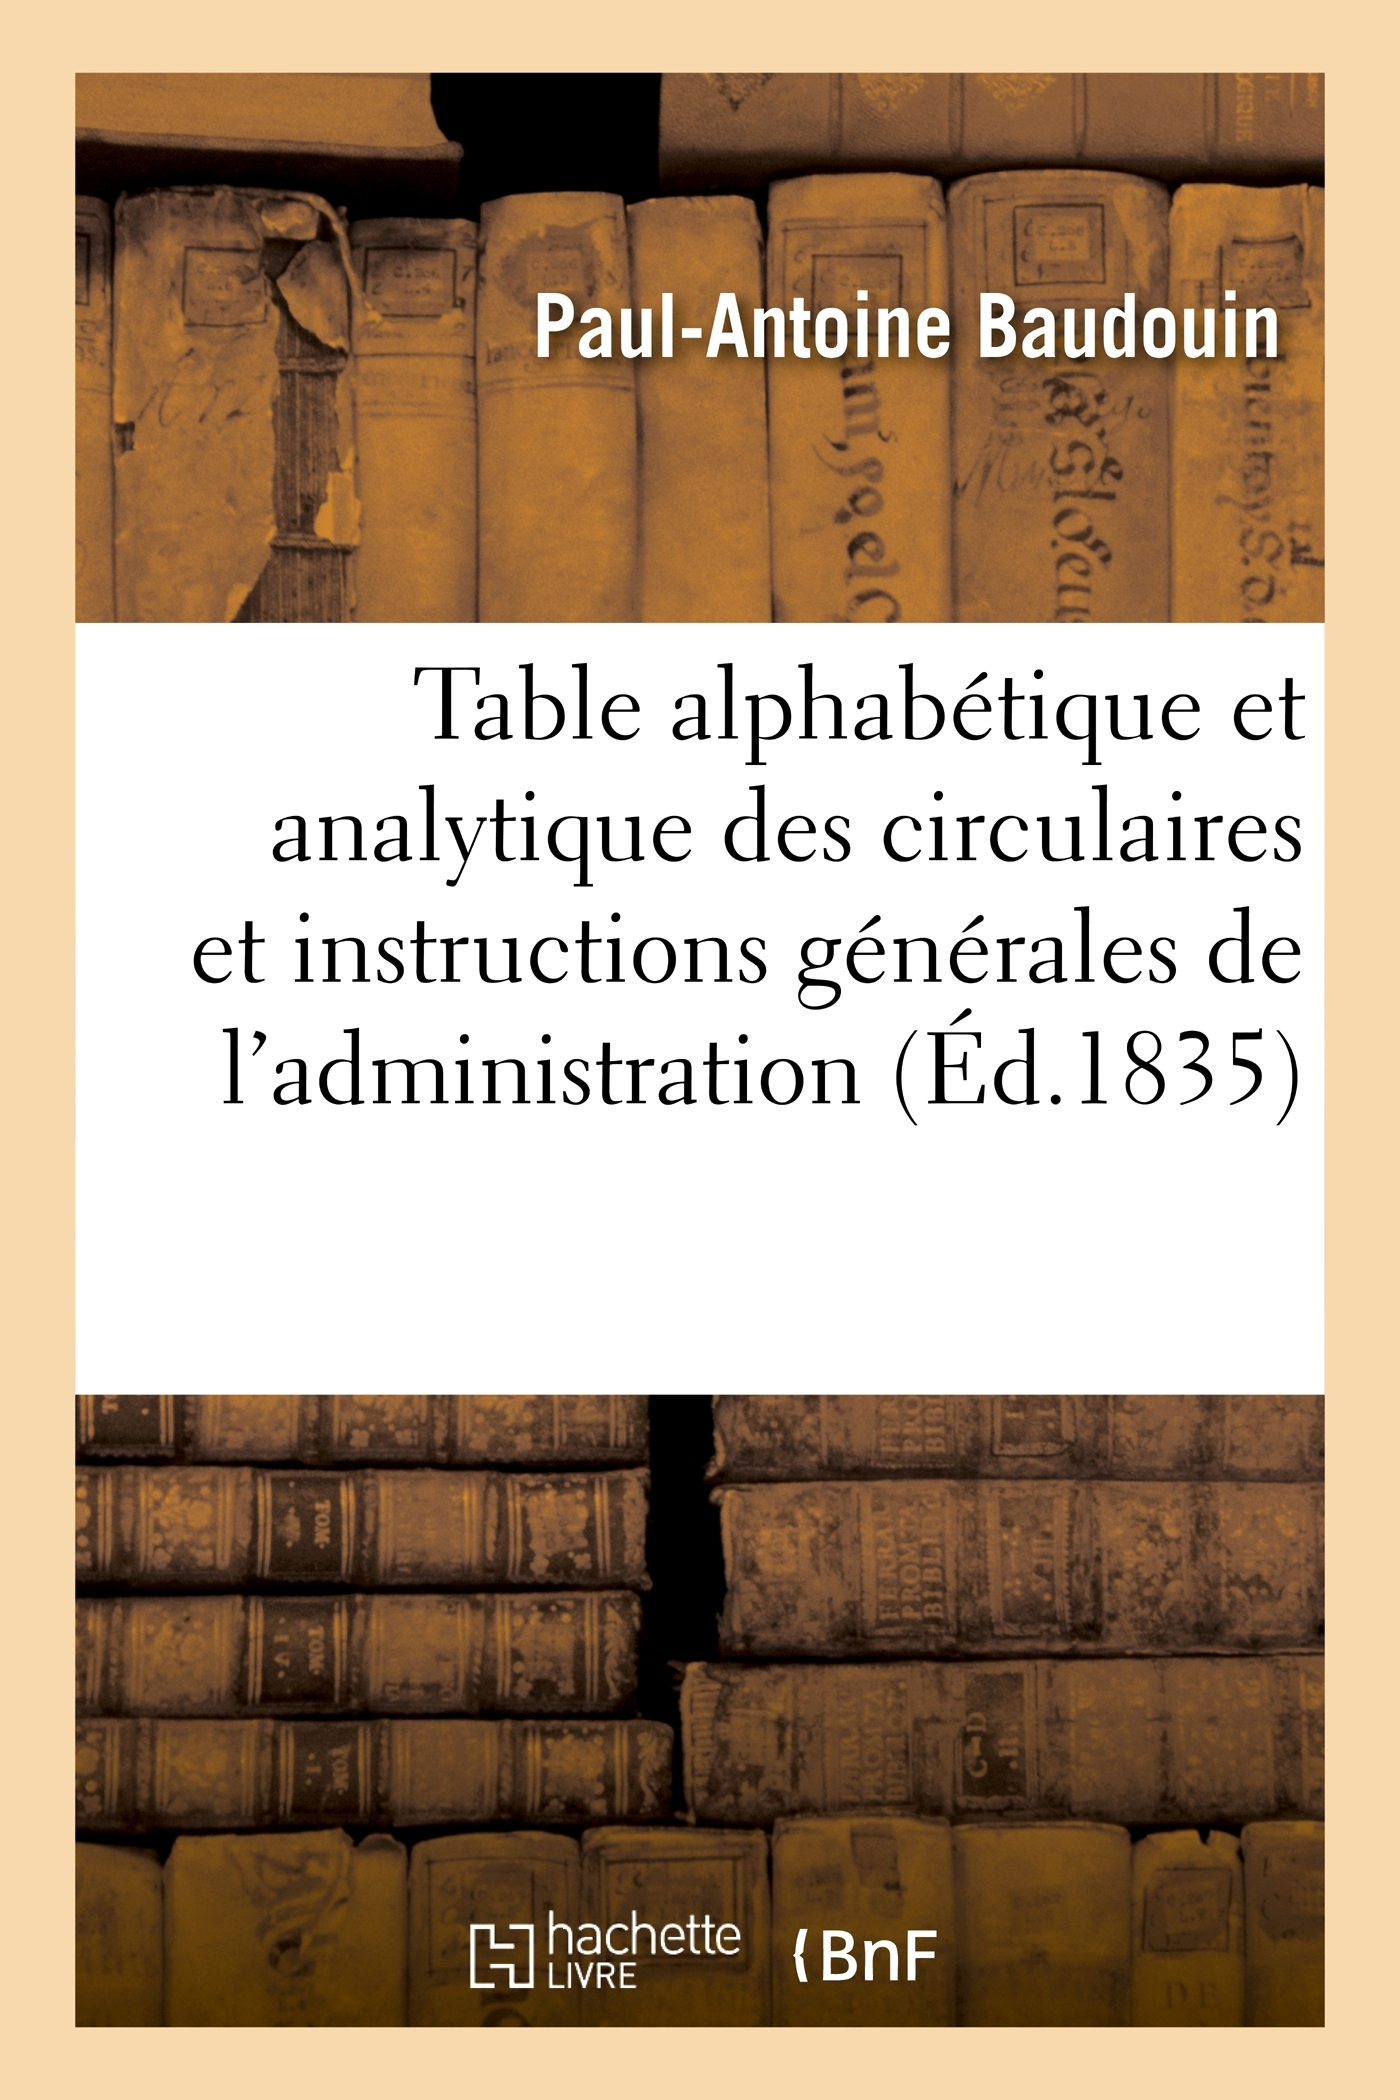 TABLE ALPHABETIQUE ET ANALYTIQUE DES CIRCULAIRES ET INSTRUCTIONS GENERALES DE L'ADMINISTRATION